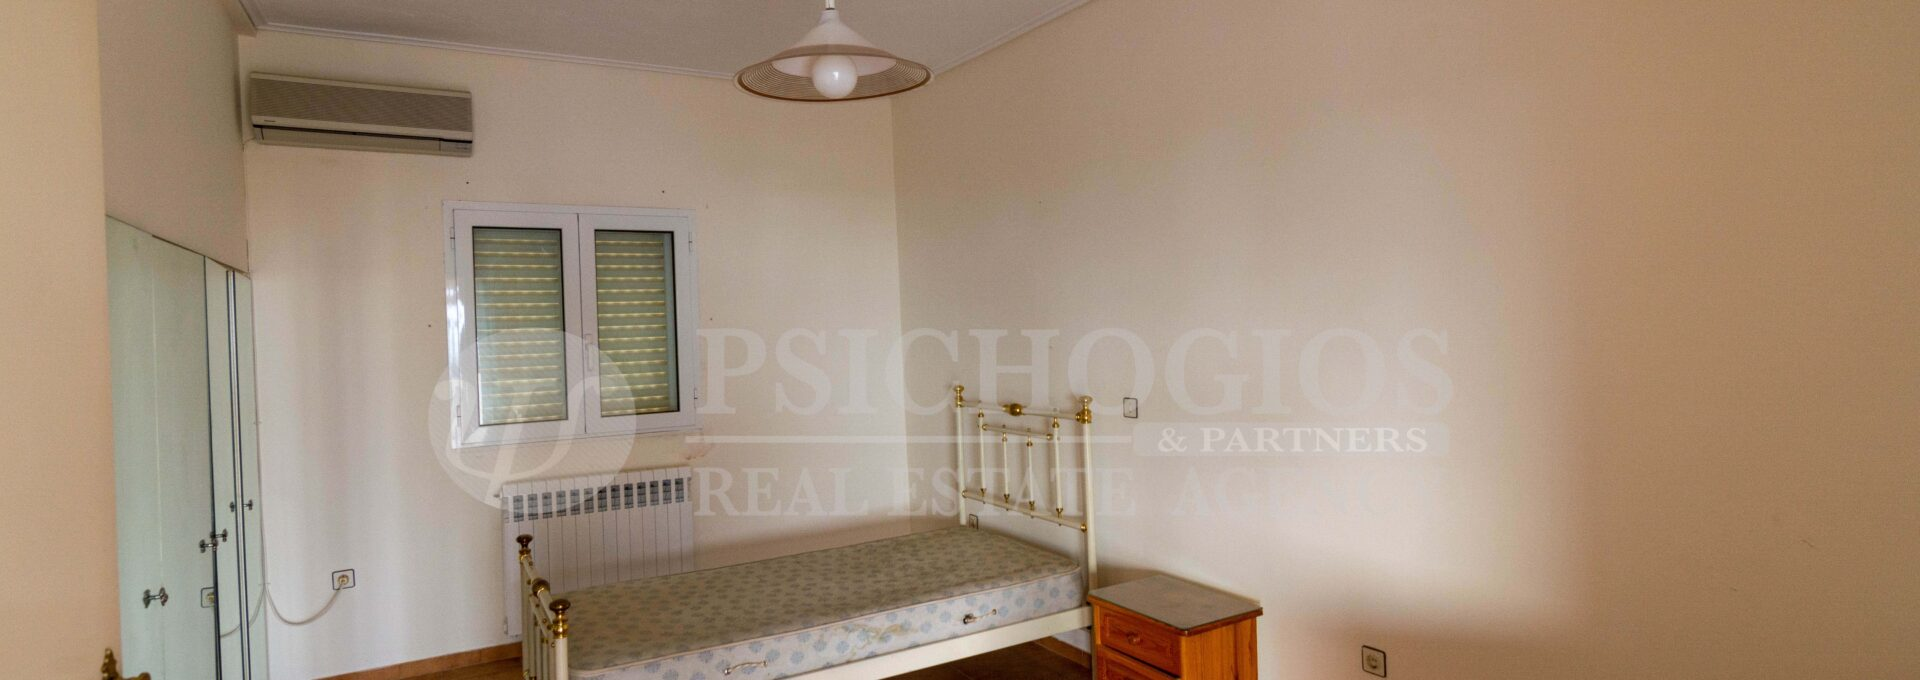 for_sale_house_380_square_meters_sea_view_ermioni_greece (37)